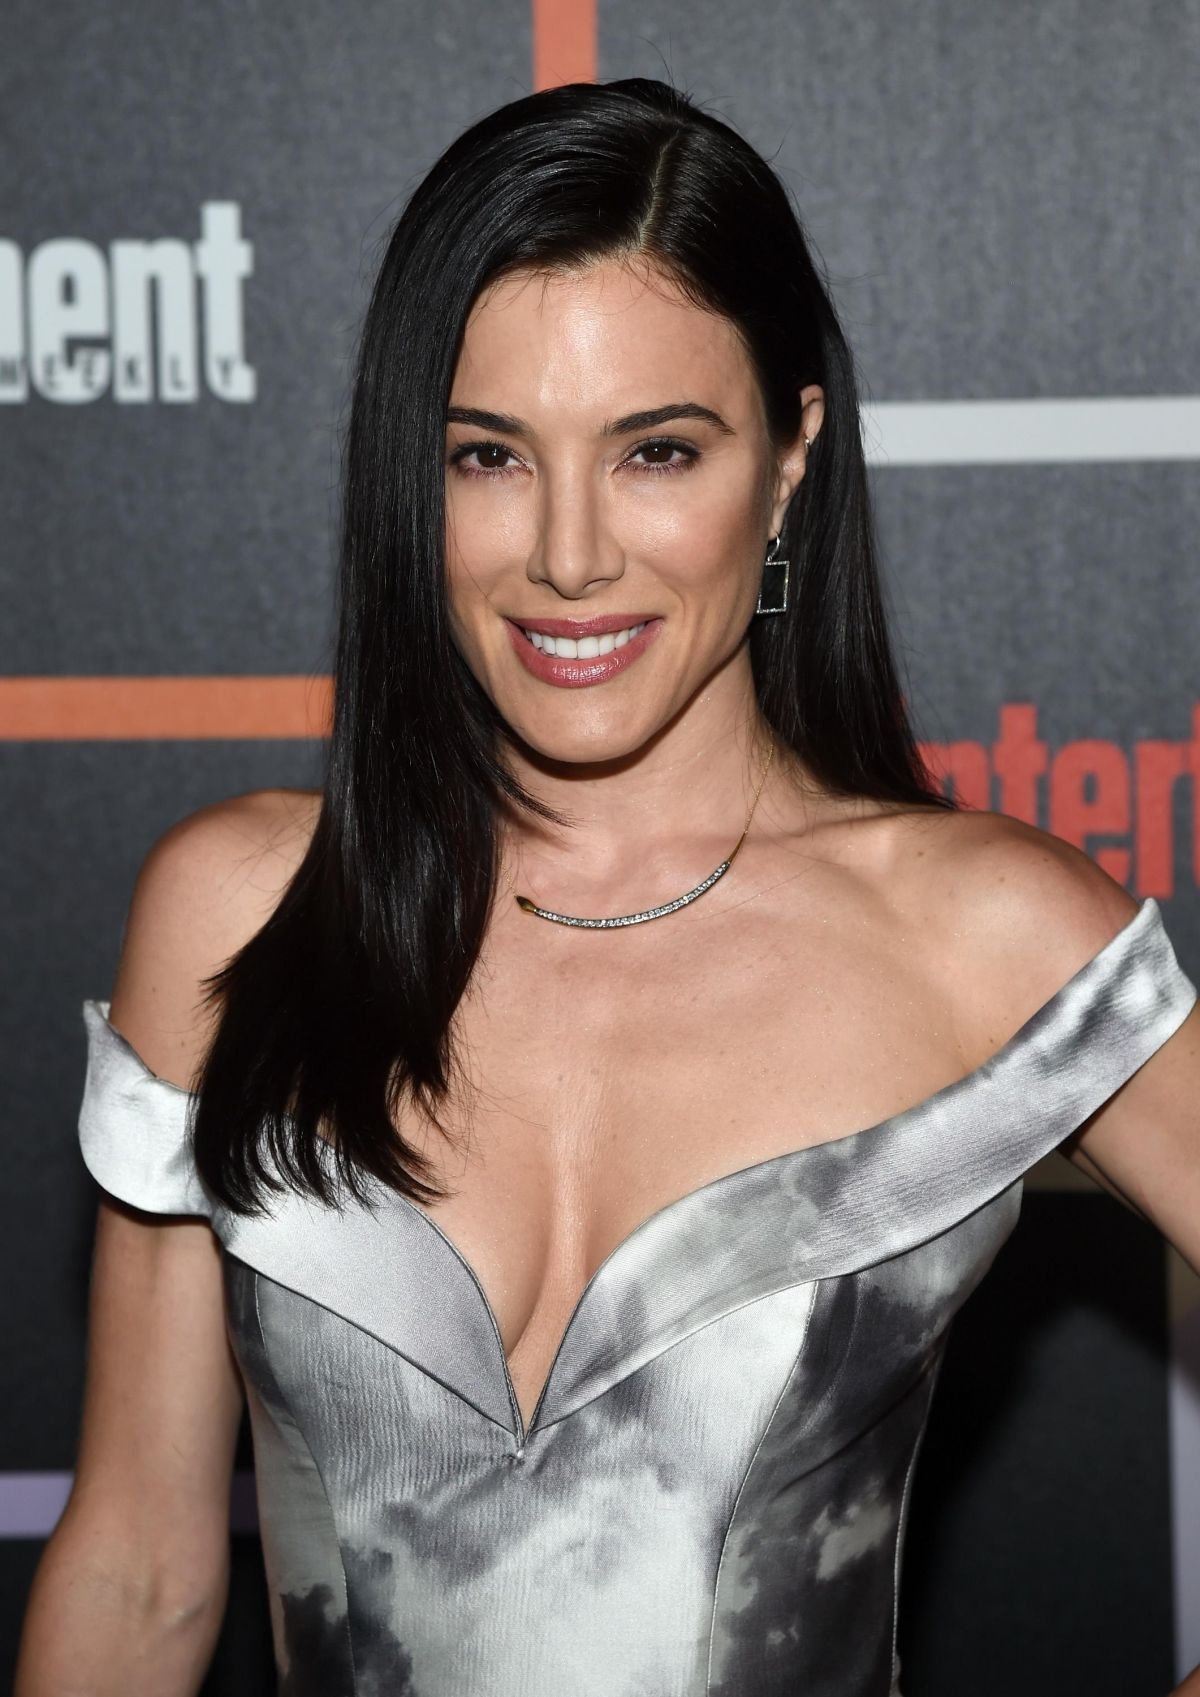 JAIME MURRAY at Entertainment Weekly's Comic-con Celebration